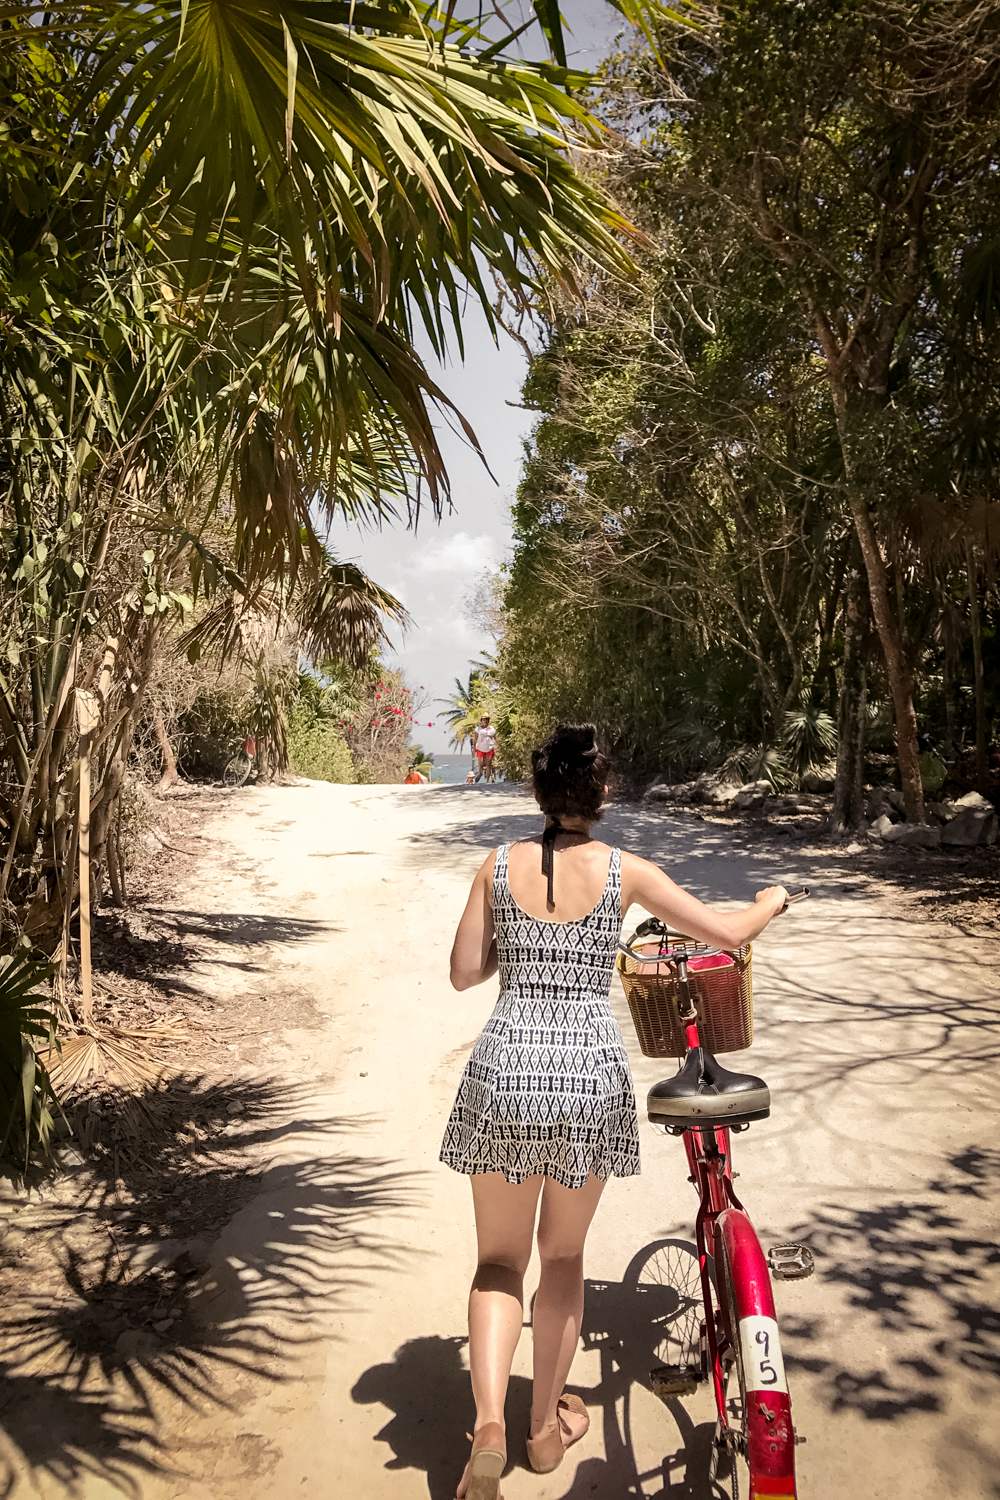 Biking to the beach in Tulum, Mexico